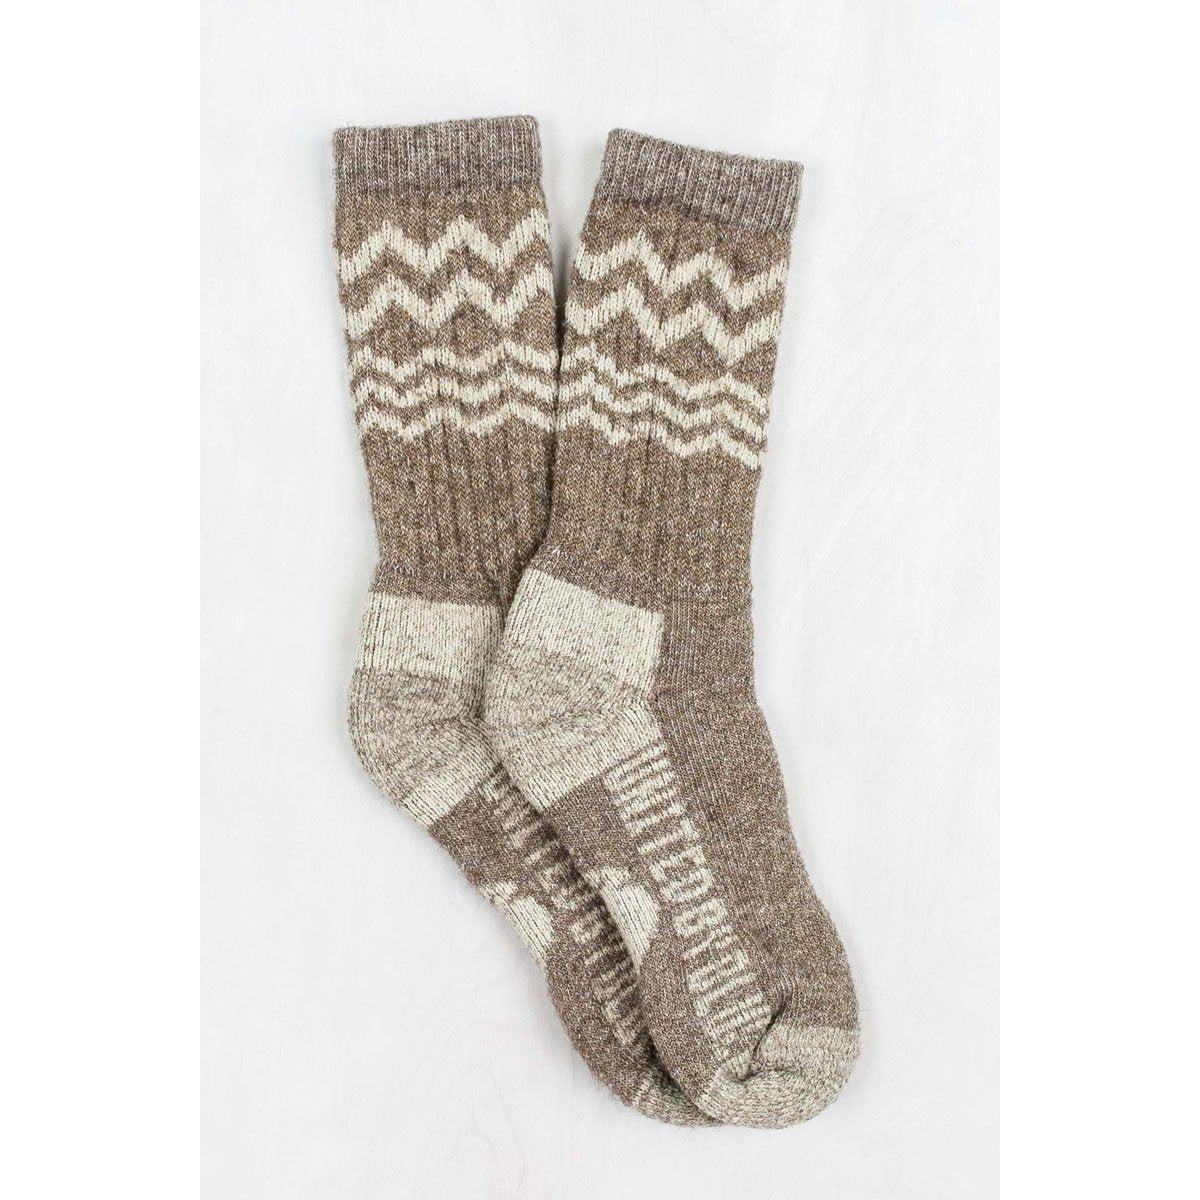 United By Blue | Ultimate Bison Sock | Bison Down Socks | Made in USA | Brown, natural, white